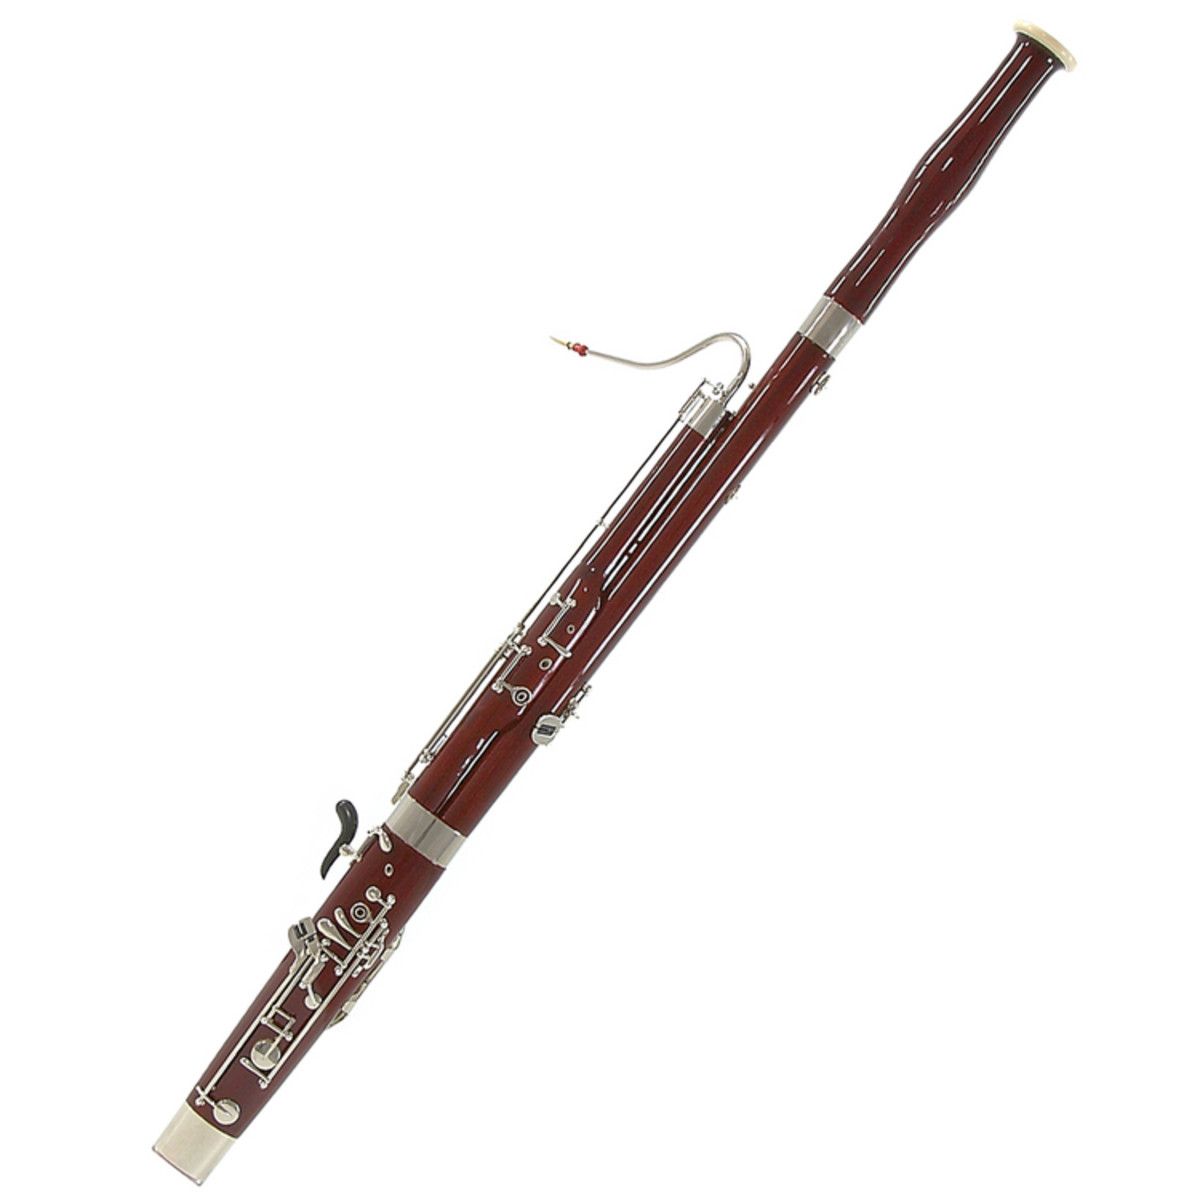 Deluxe Bassoon by Gear4music - Nearly New at Gear4music.com  Deluxe Bassoon ...